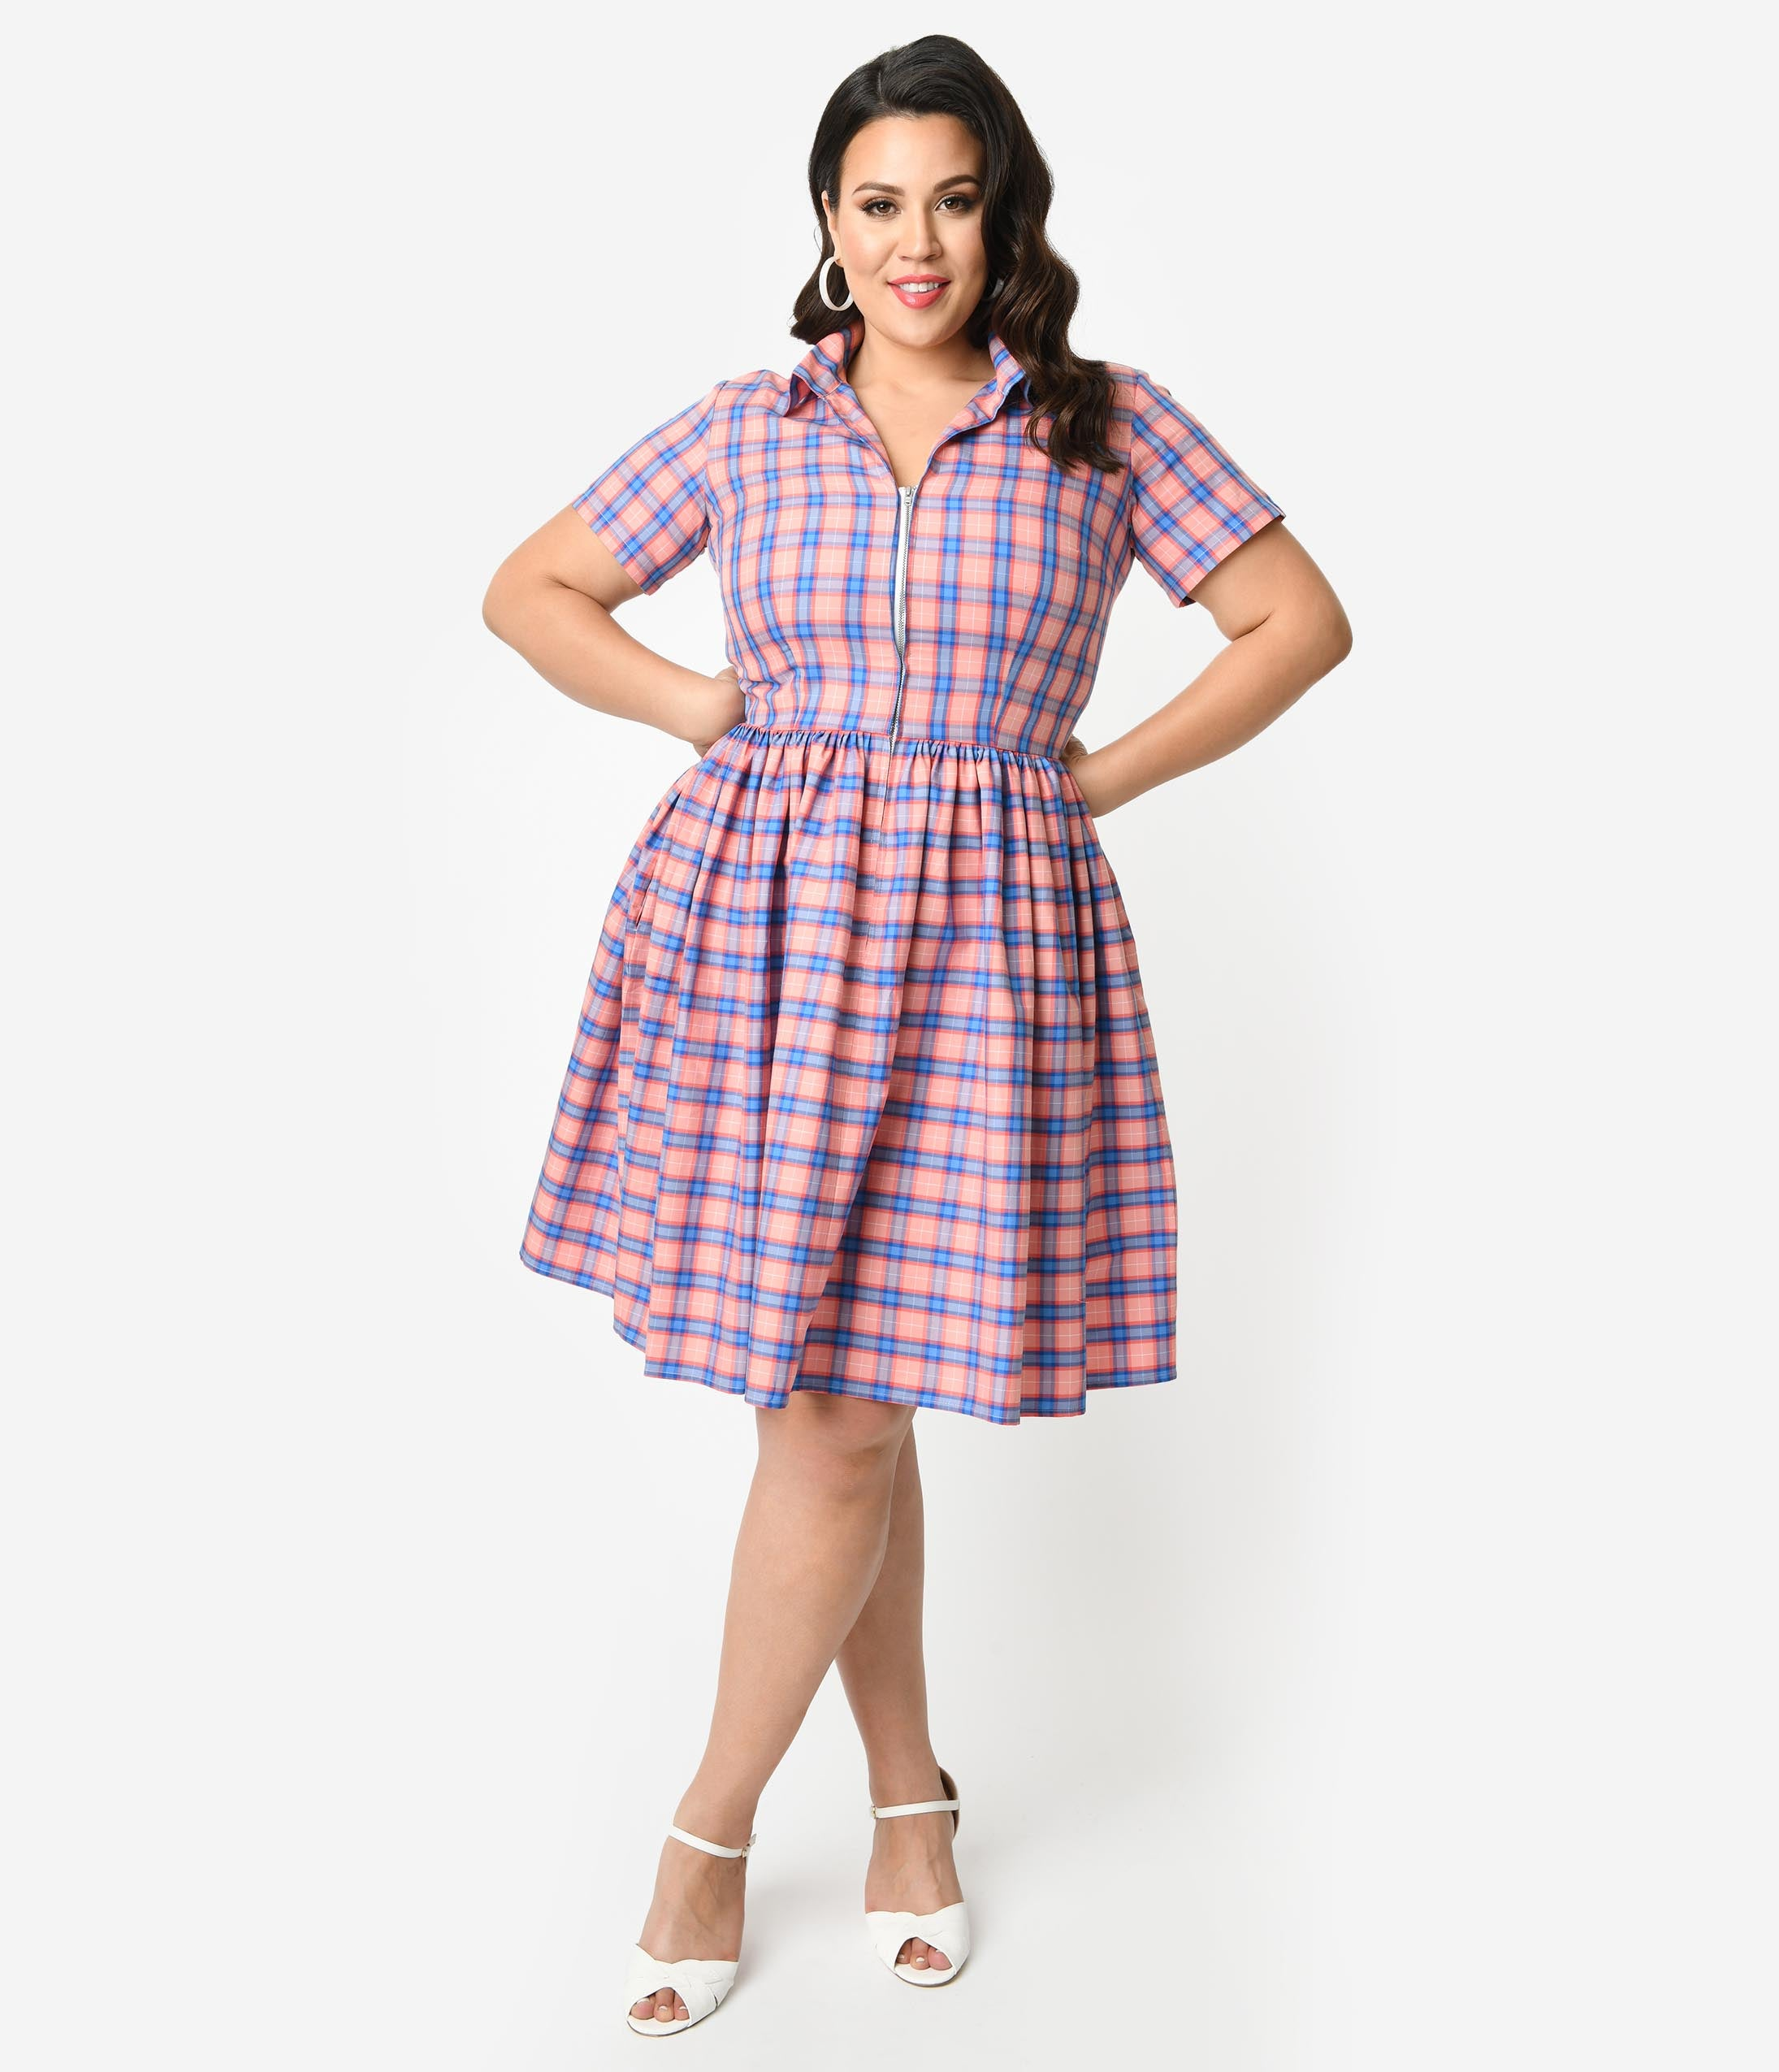 e780a88bb8c 1950s Plus Size Fashion   Clothing History Bernie Dexter Plus Size 1950S  Style Blue Pink Plaid